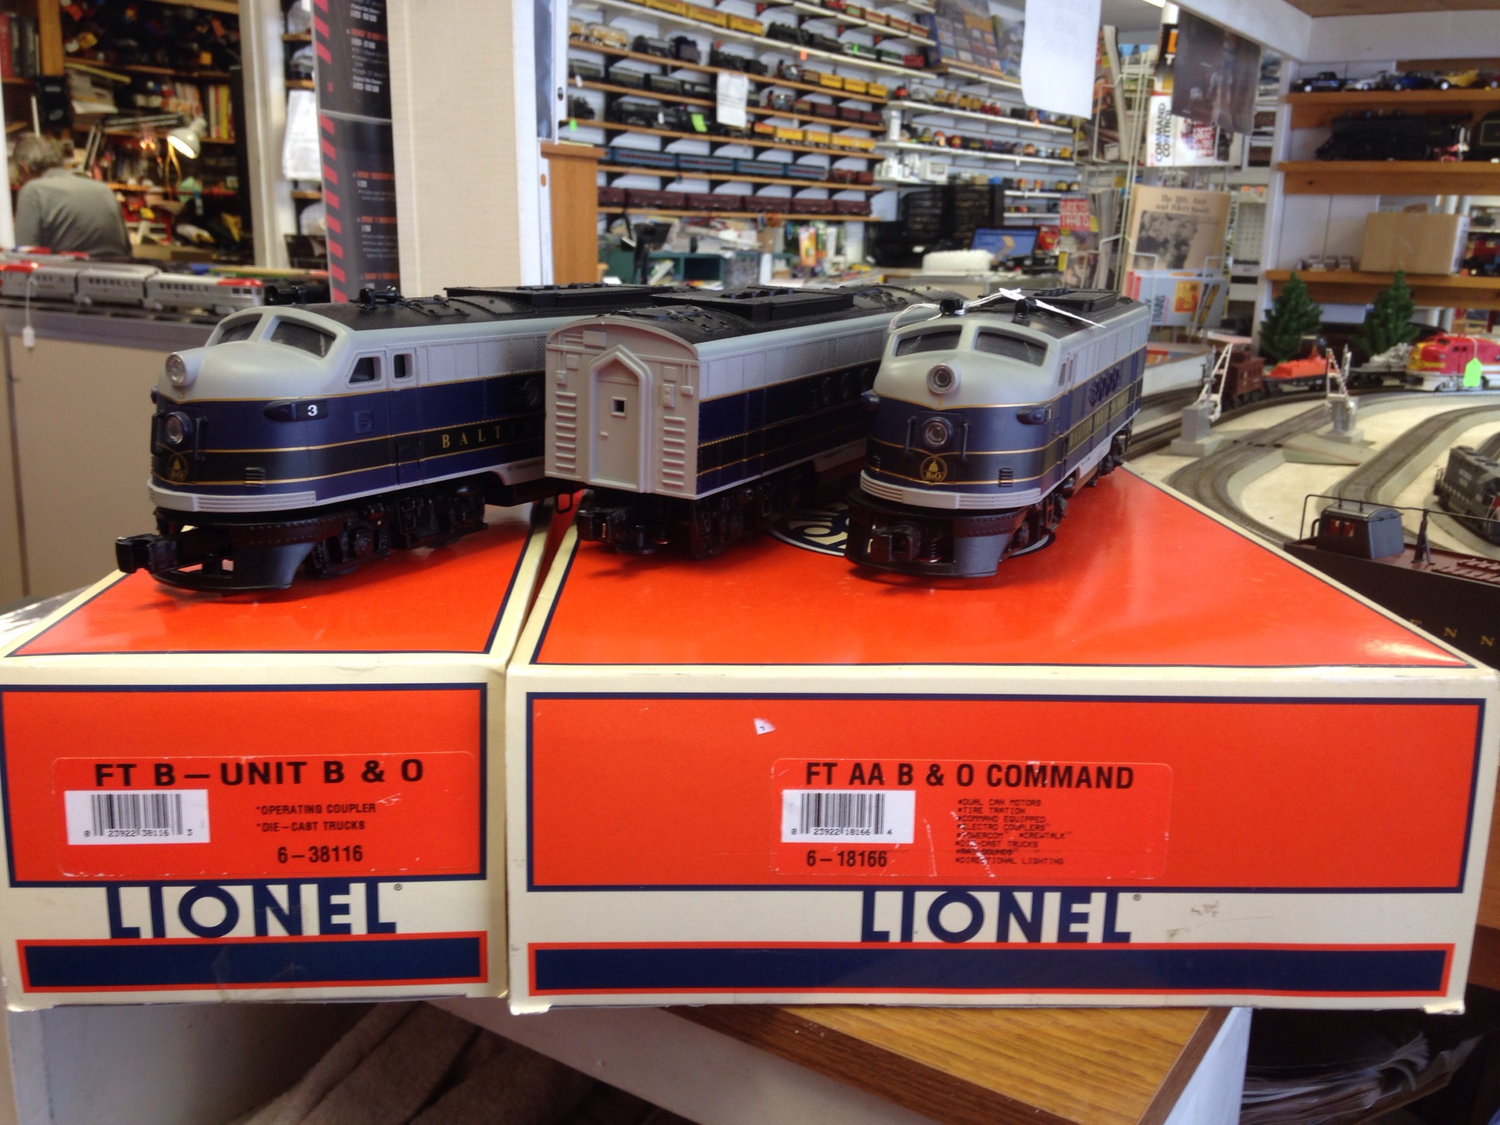 Lionel B&O FT ABA 6-18166/6-38116                       have 4 car passenger car set for additional cost.